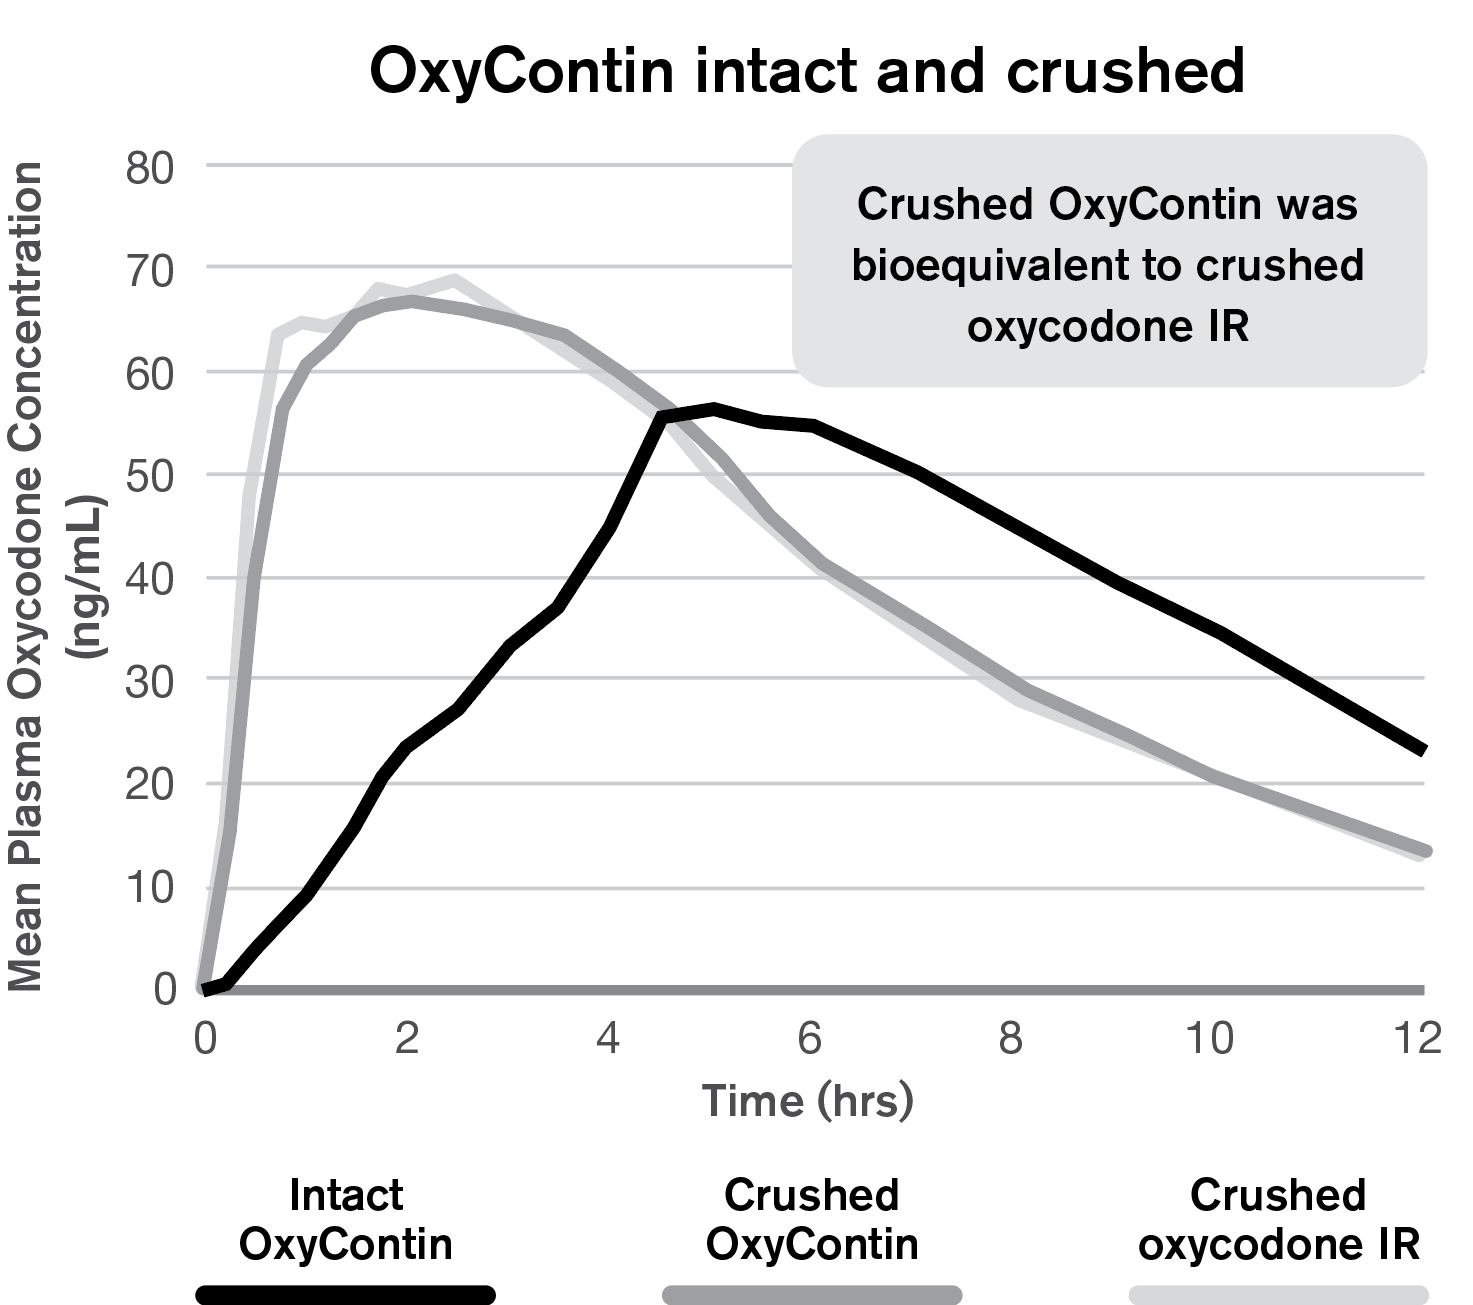 Oxycontin ER intact and crushed